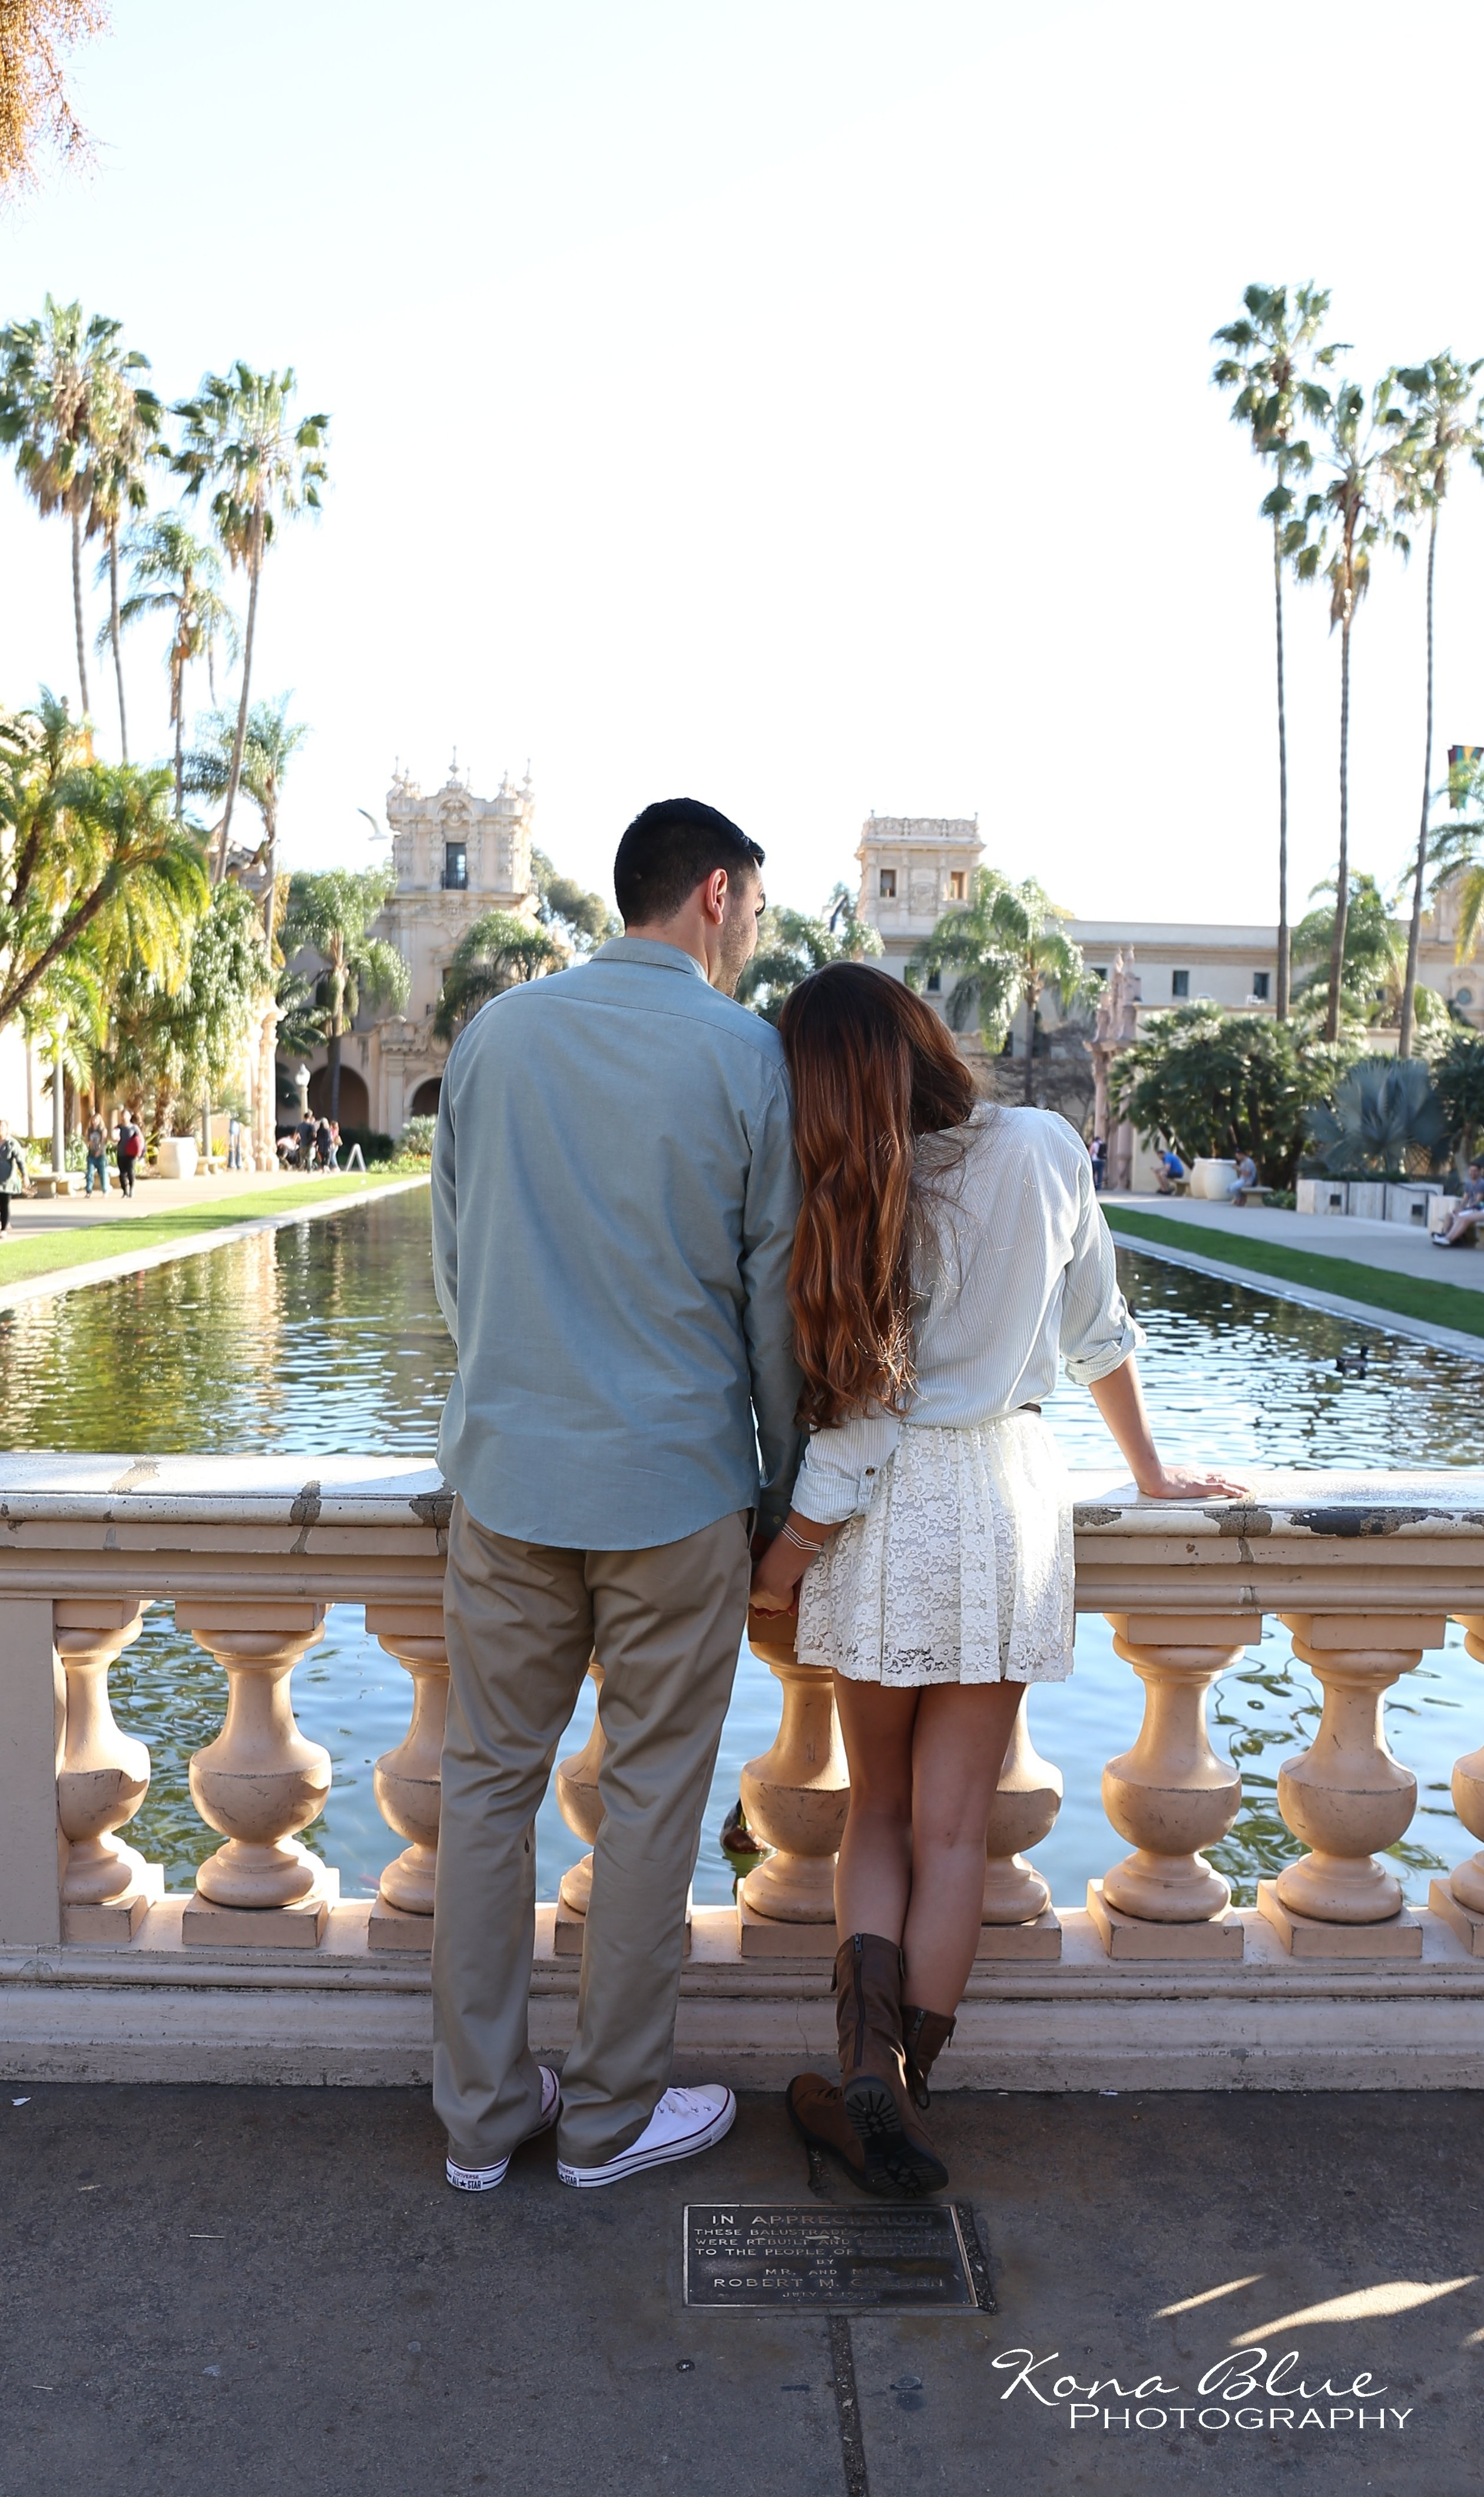 10 Elegant Romantic Date Ideas San Diego engagement save the date photography ideas in balboa park san diego 1 2020